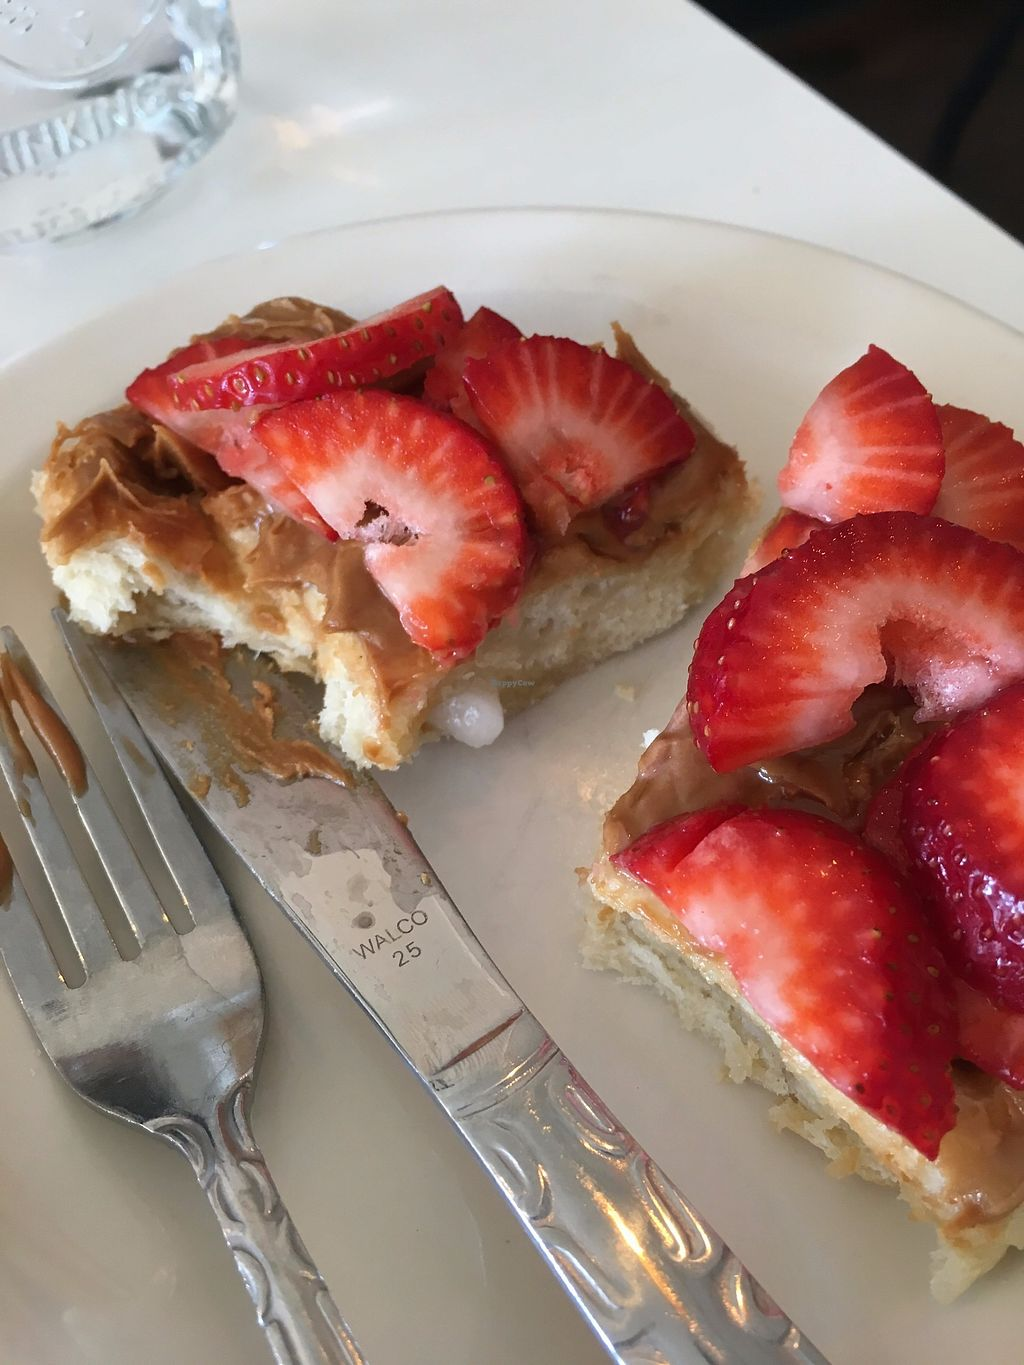 """Photo of Proust Coffee  by <a href=""""/members/profile/vanofvegan"""">vanofvegan</a> <br/>The waffles have such an amazing texture, they're crunchy on the inside. So good!! <br/> August 20, 2017  - <a href='/contact/abuse/image/97975/294826'>Report</a>"""